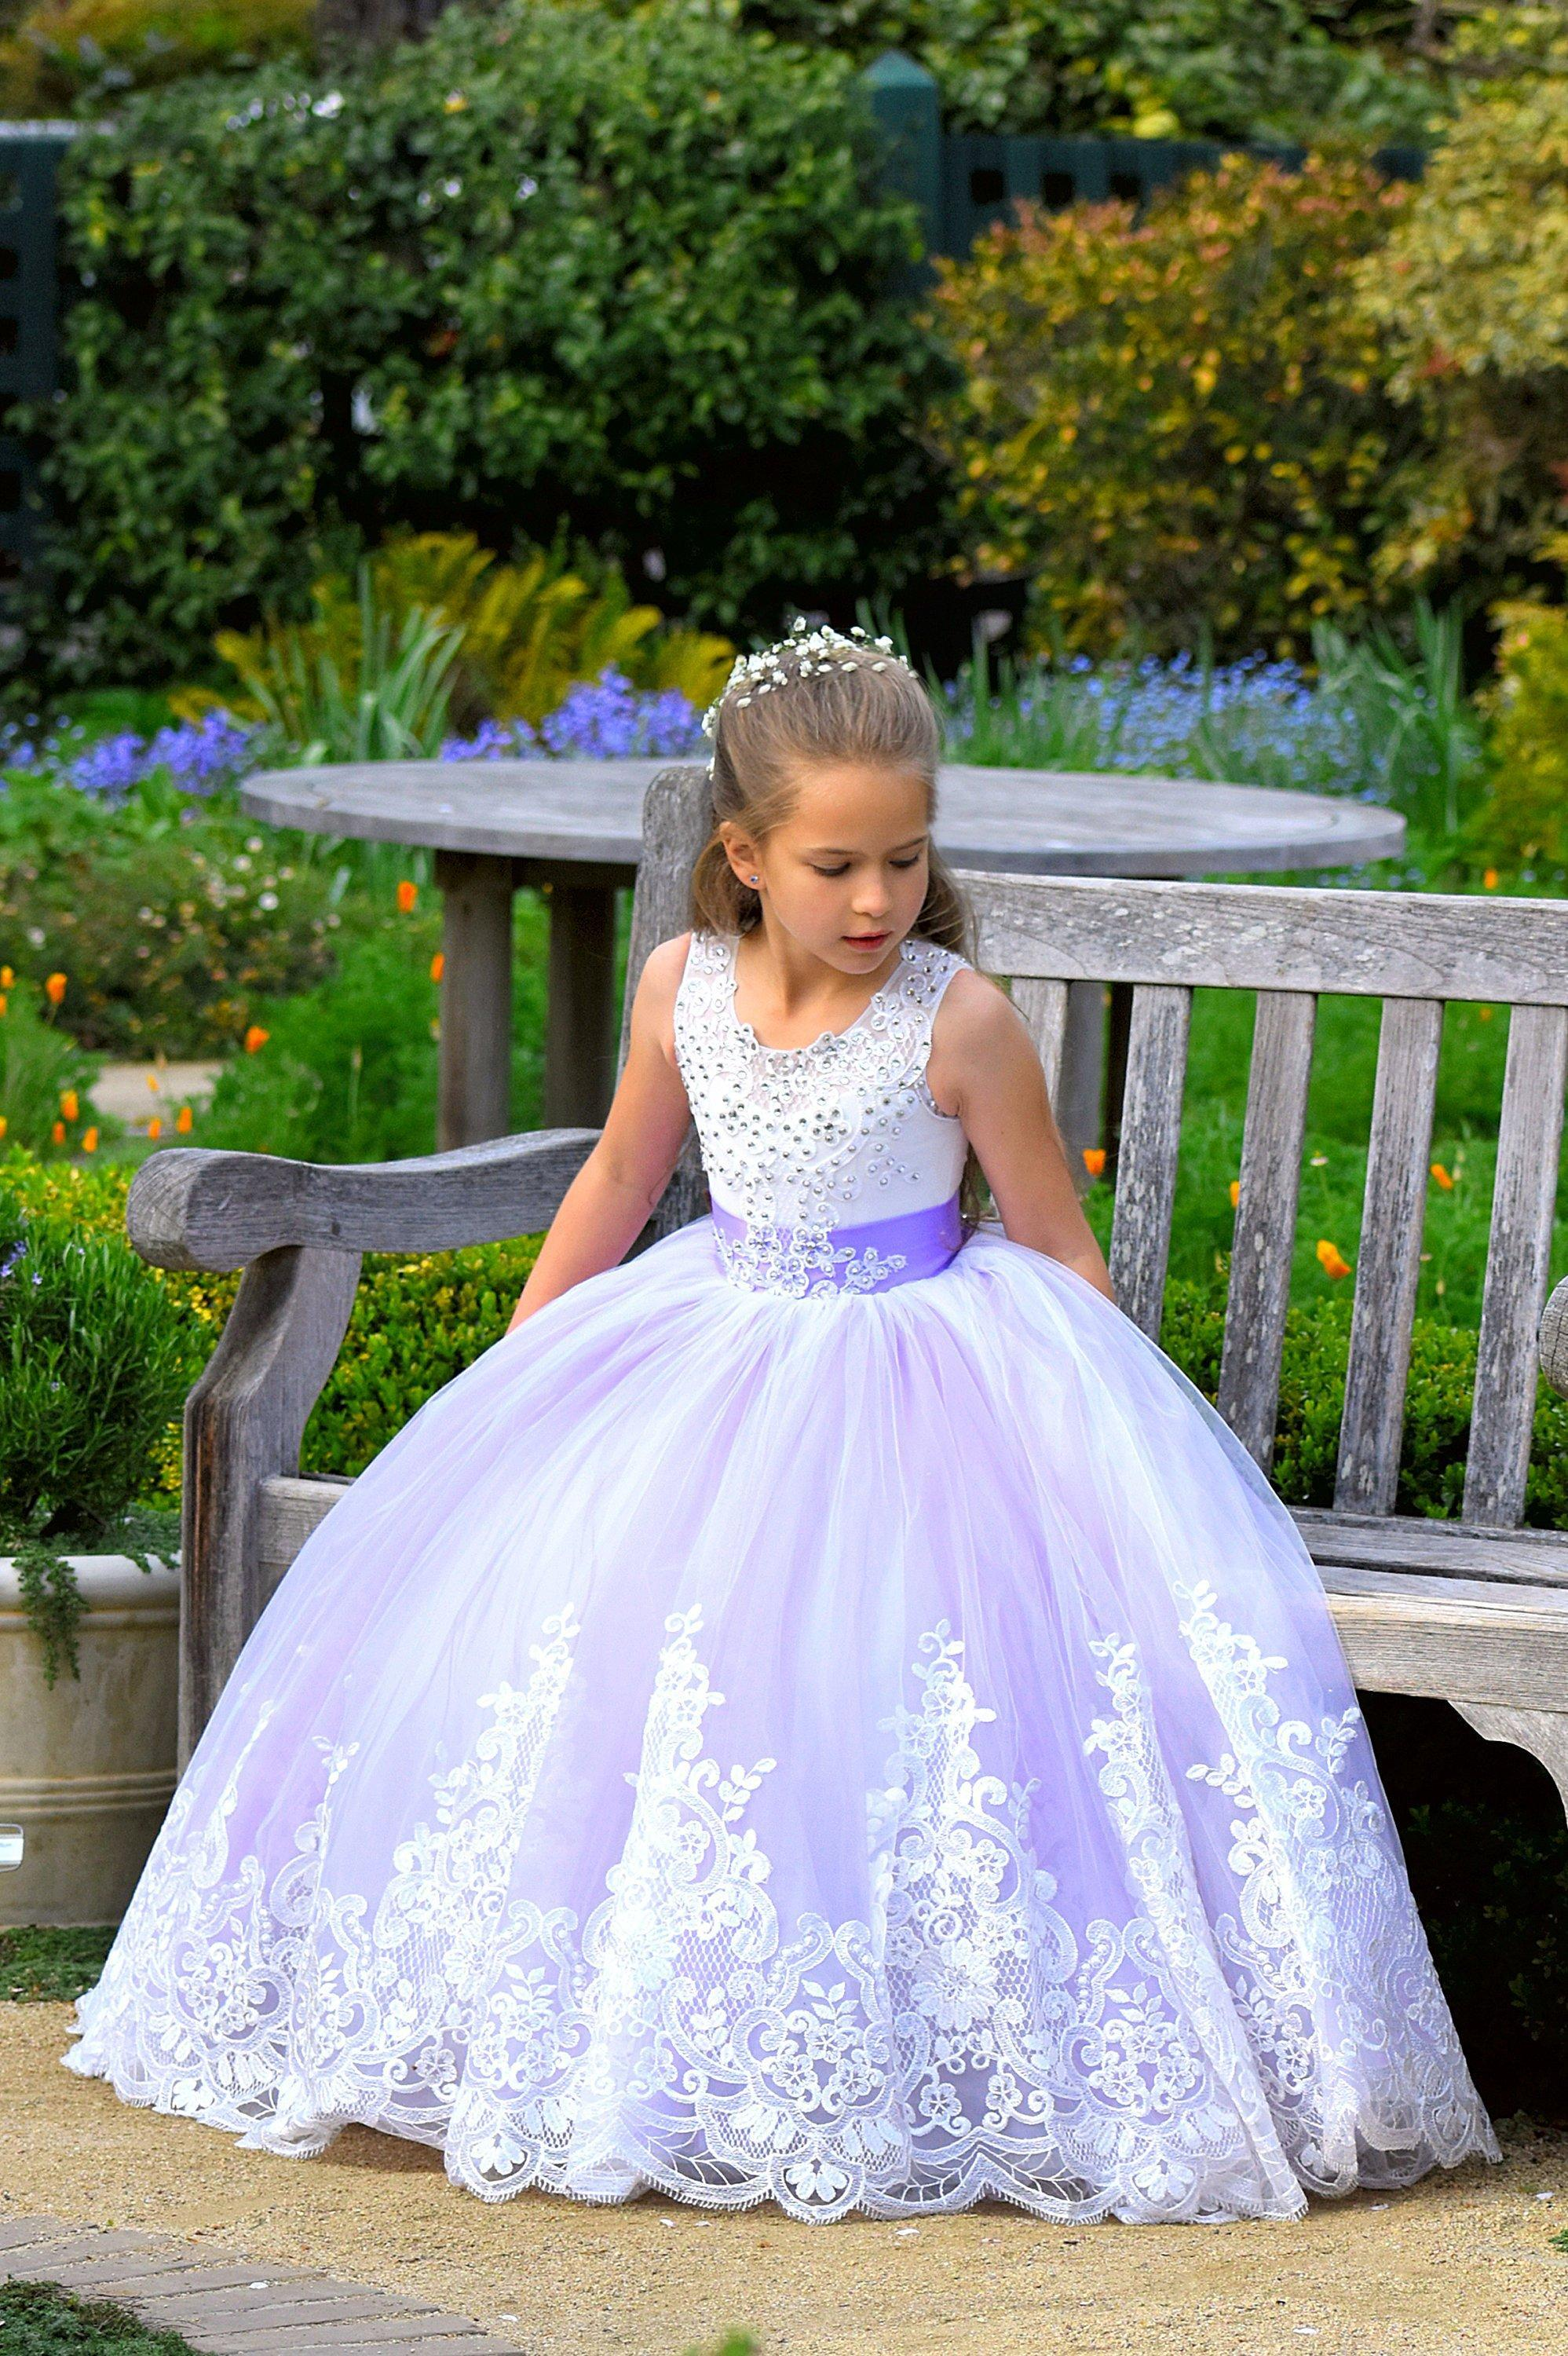 Purple Flower Girl Dress Lavender Wedding Lace Little Girl Kids Holiday  Birthday Princess Purple Wedding Party Girls Dress Formal Occasion White  Girl ... e4c469d4d